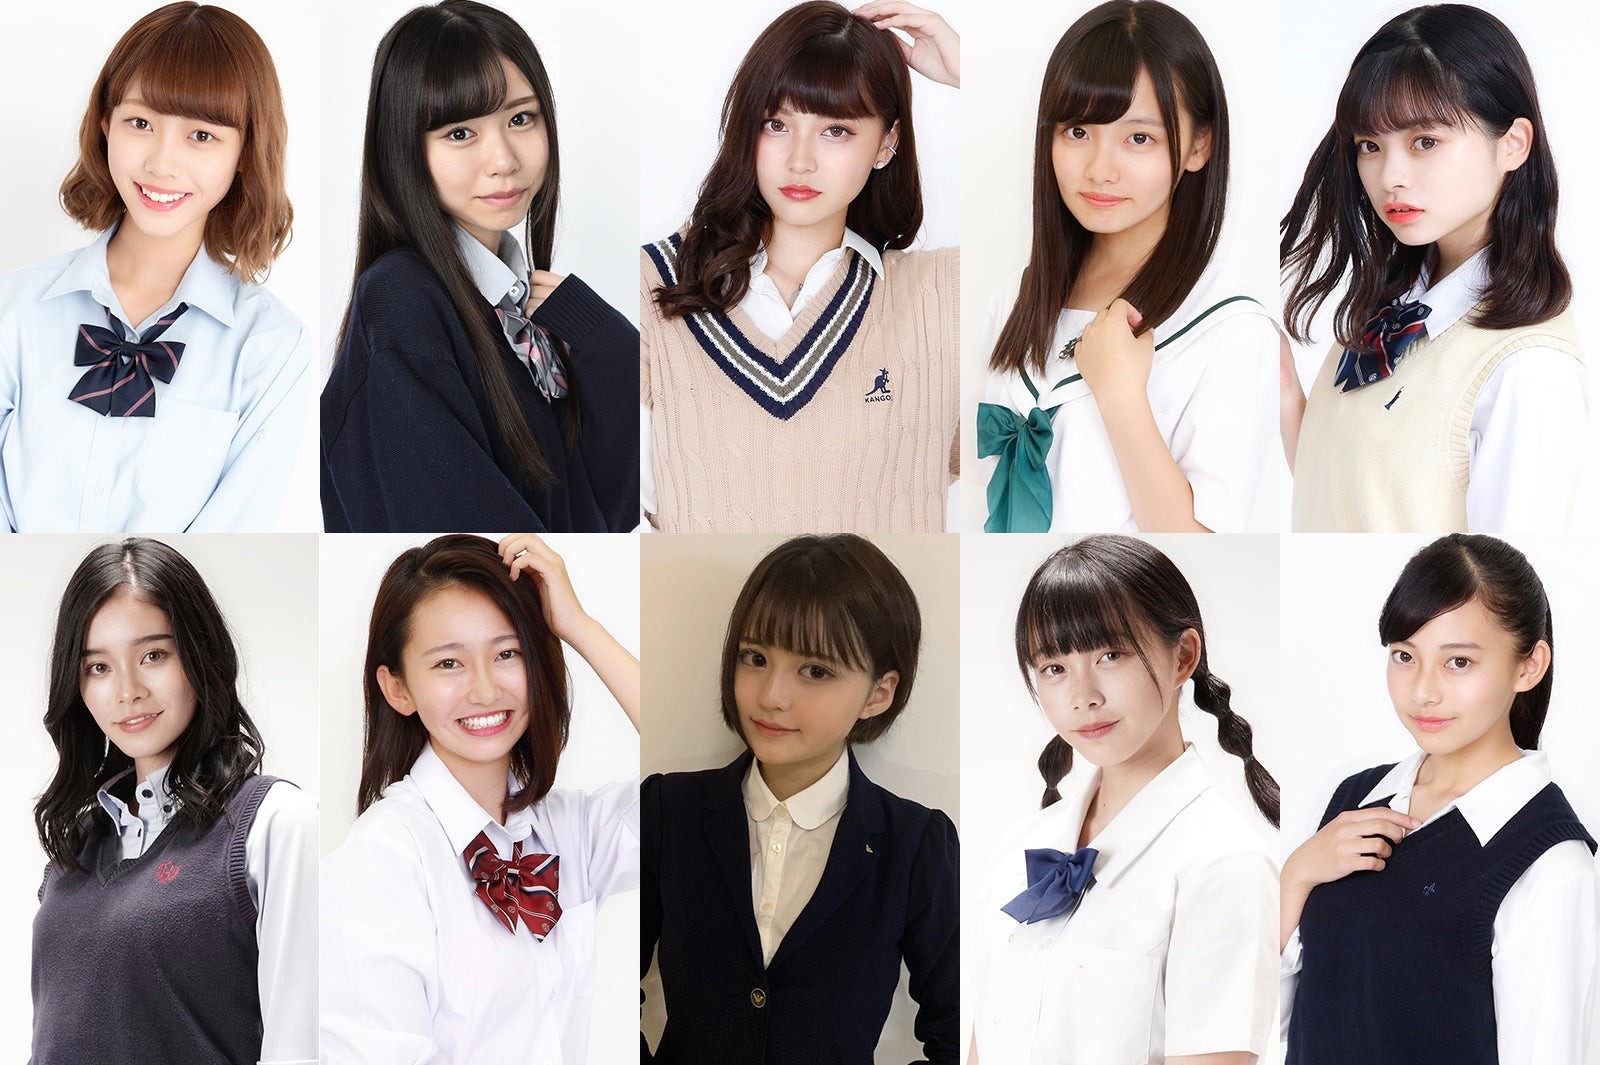 [Image] 10 cute Japanese high school girls are here wwwwwwwww